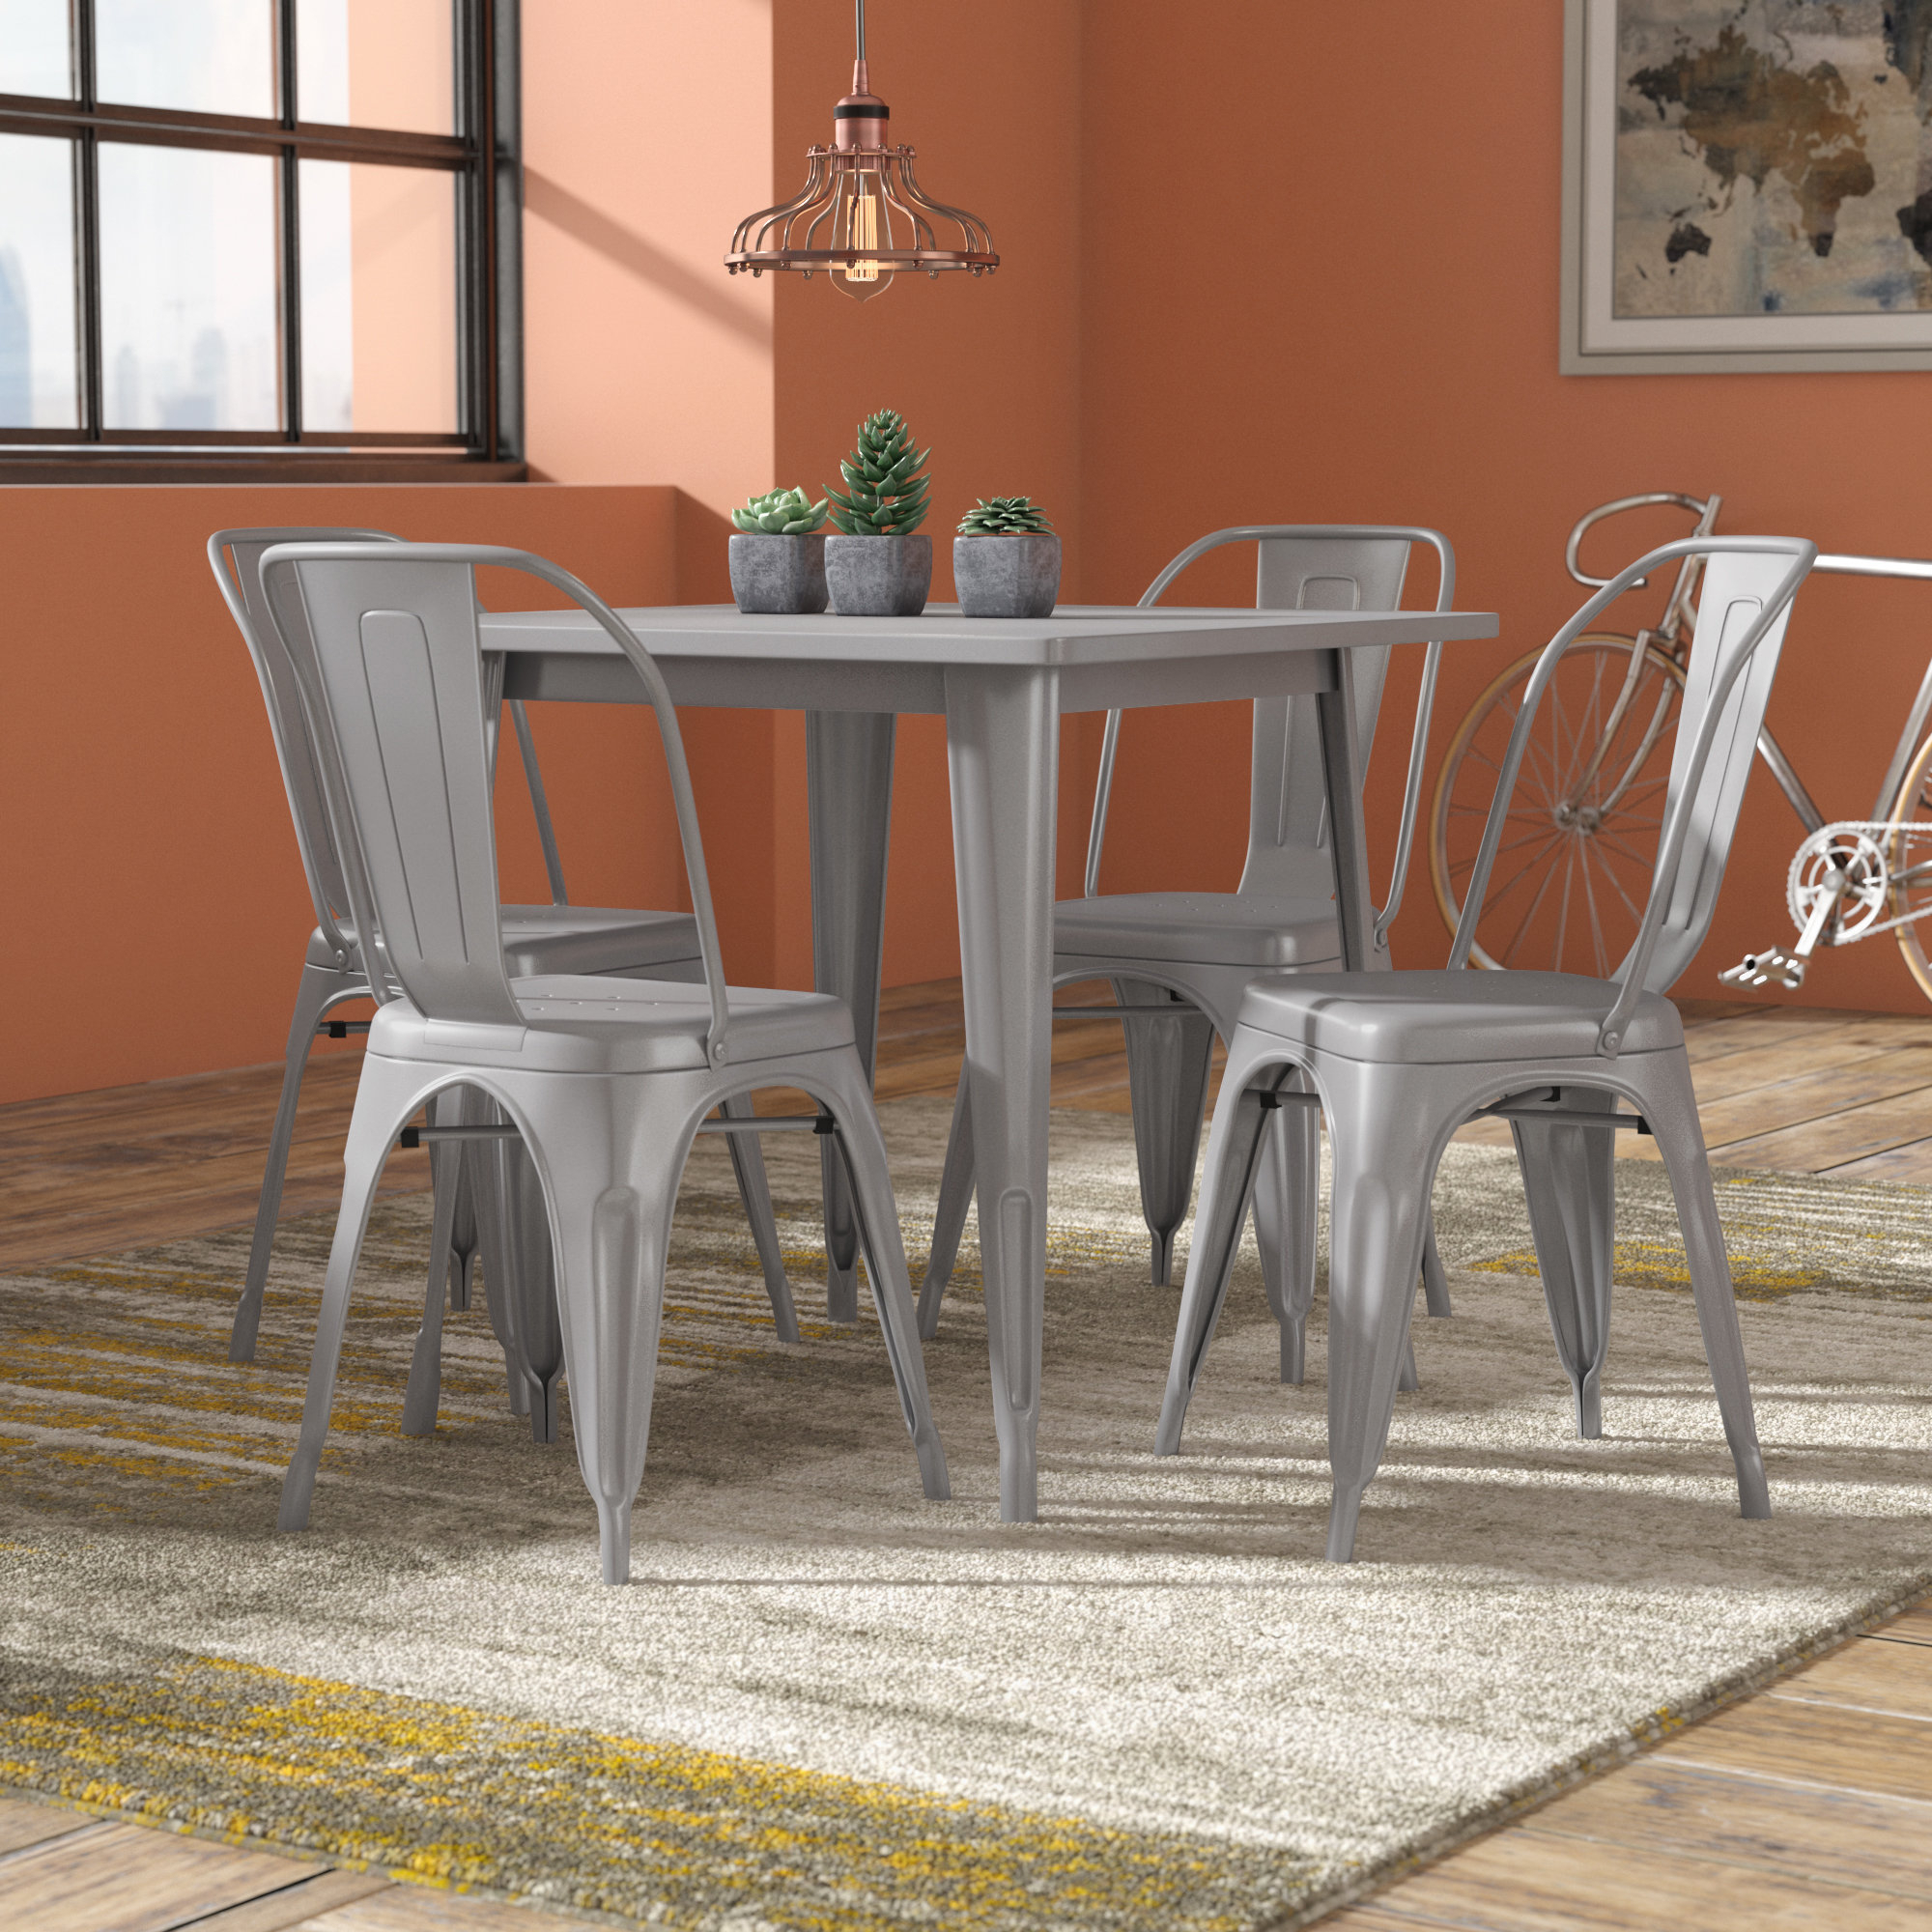 Wayfair Intended For Mulvey 5 Piece Dining Sets (View 7 of 25)